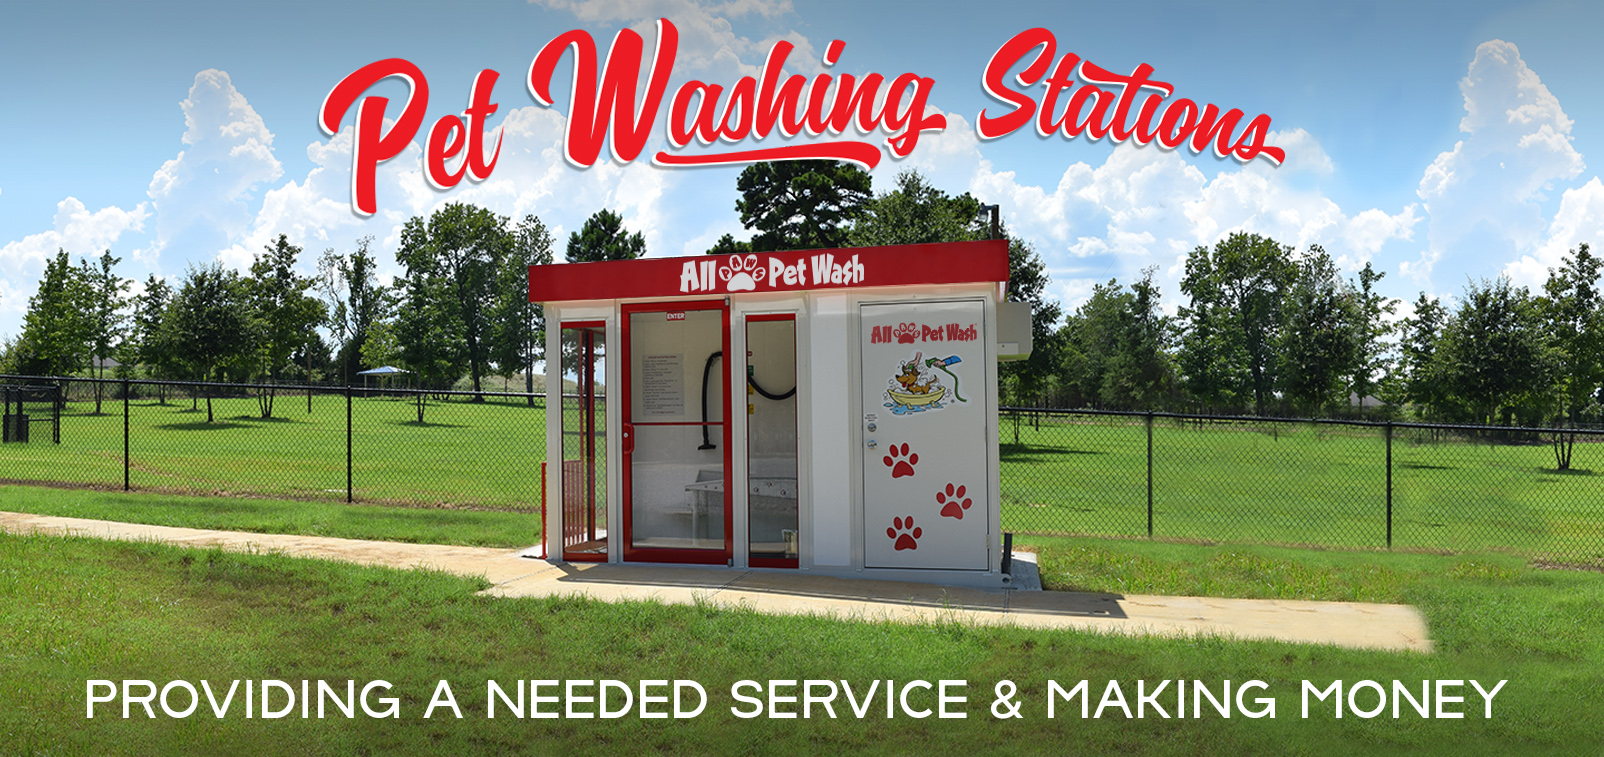 Dog washing stations self serve pet washes all paws pet wash who doesnt know someone who owns a pet its a billion dollar industry with most people considering their animals part of the family solutioingenieria Gallery